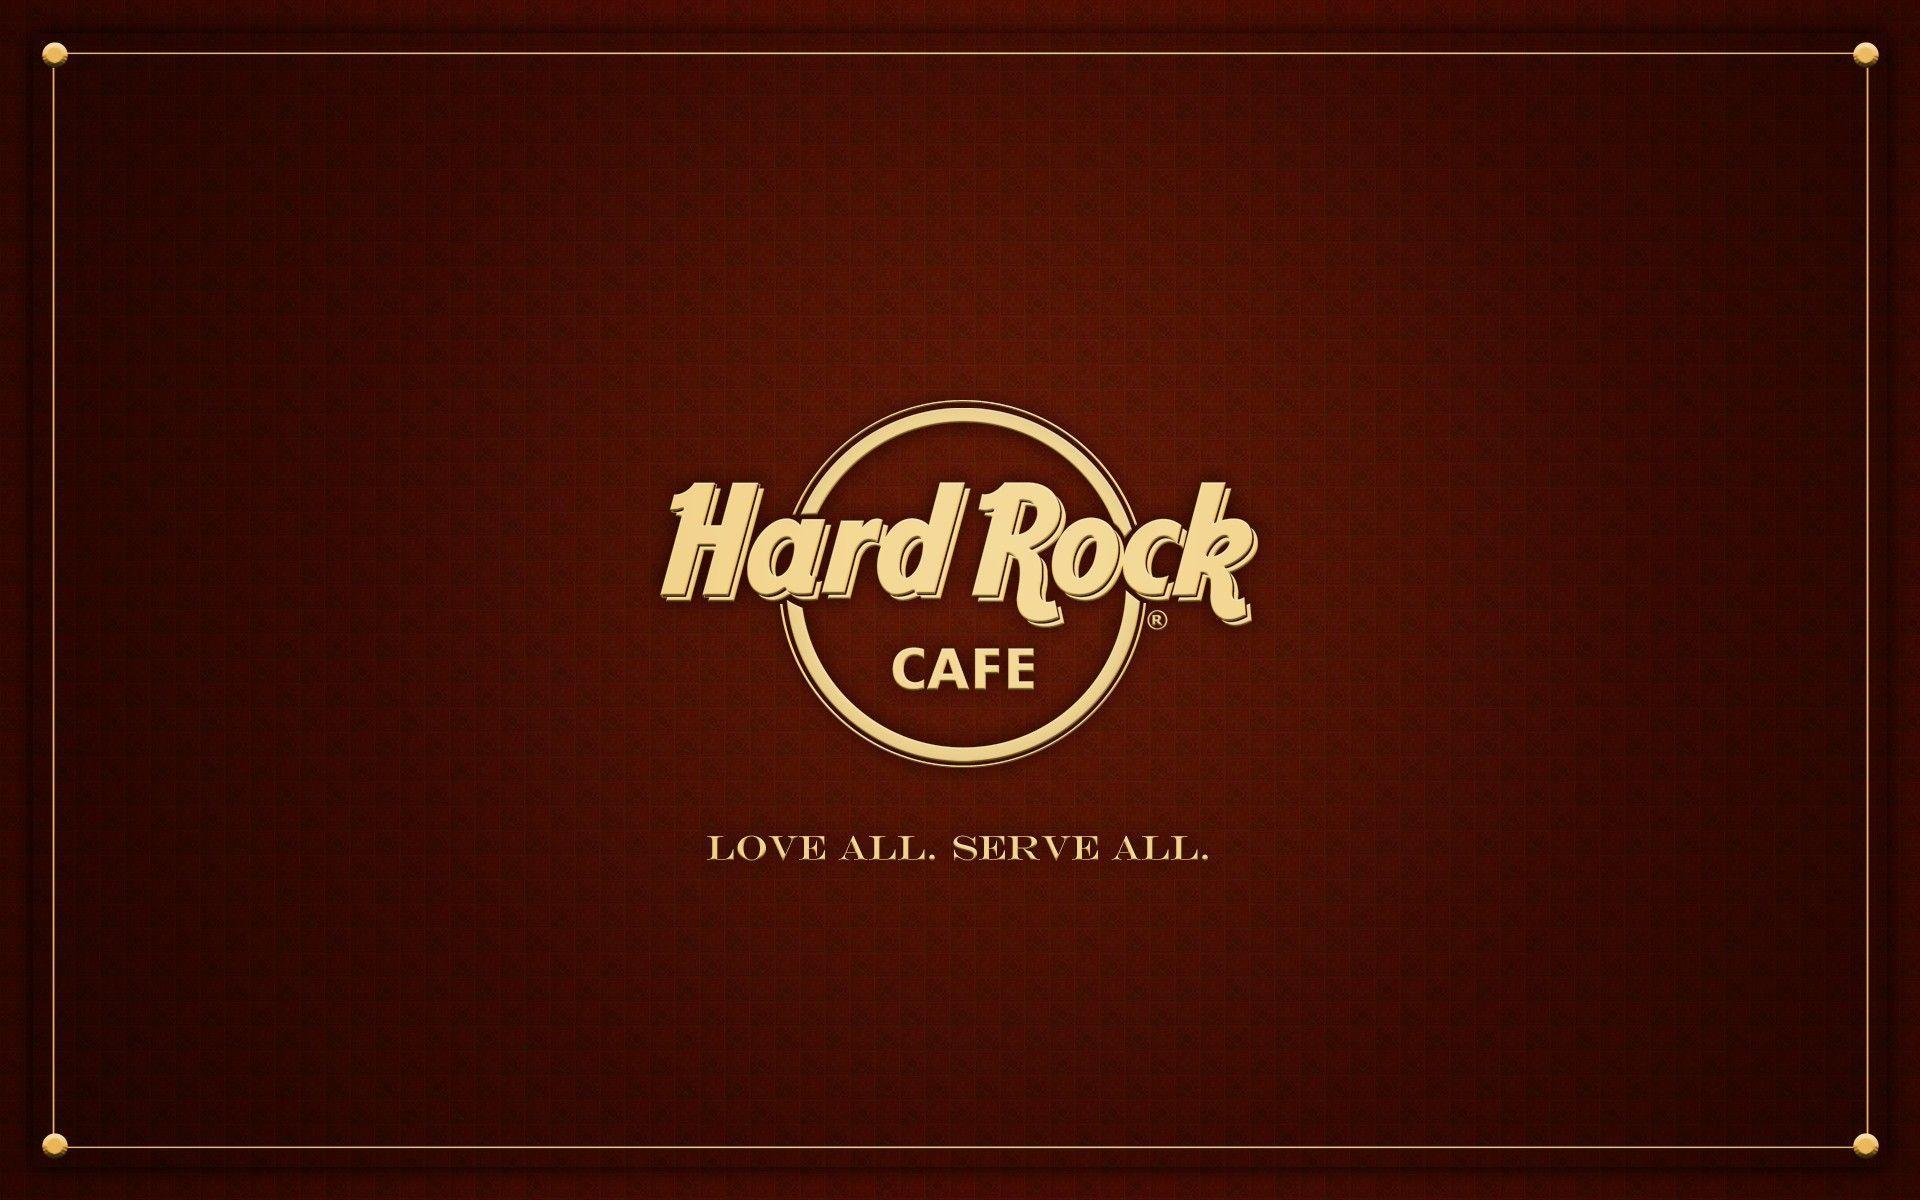 1 Hard Rock Cafe HD Wallpapers | Backgrounds - Wallpaper Abyss